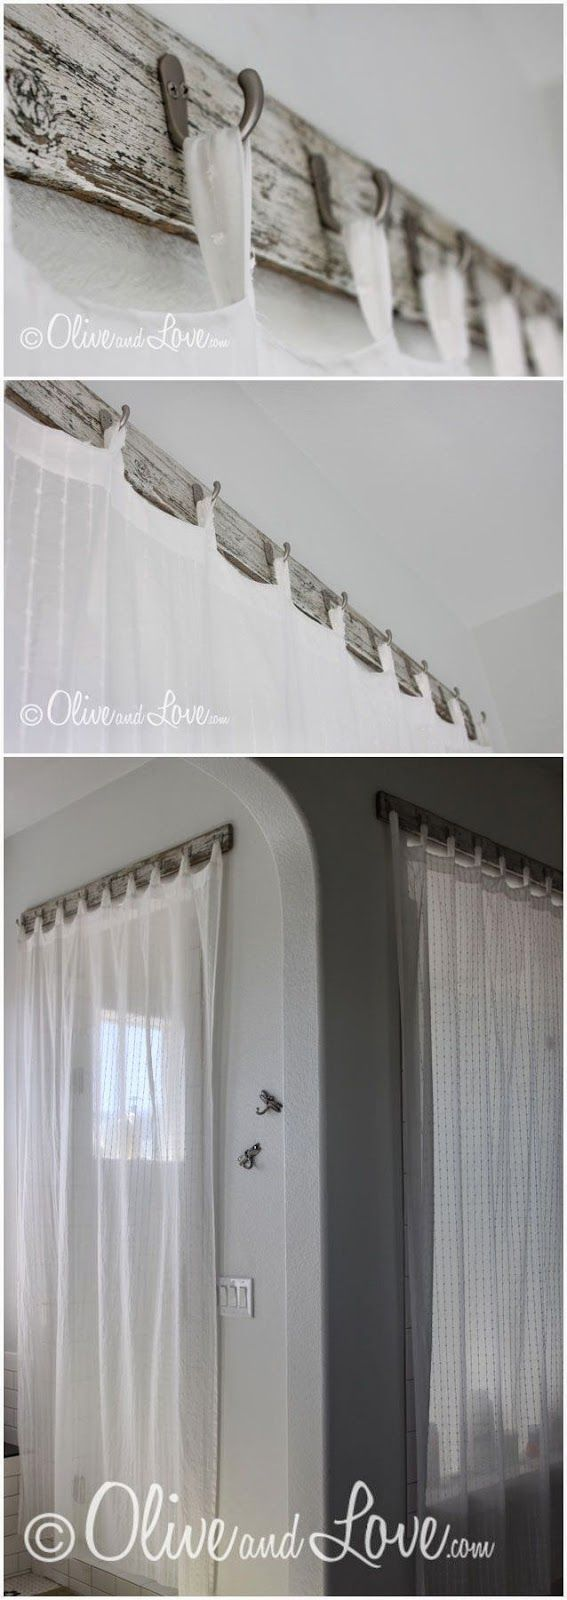 Love this idea to hang curtains. Add a simple hook to tie them back if you want them open.